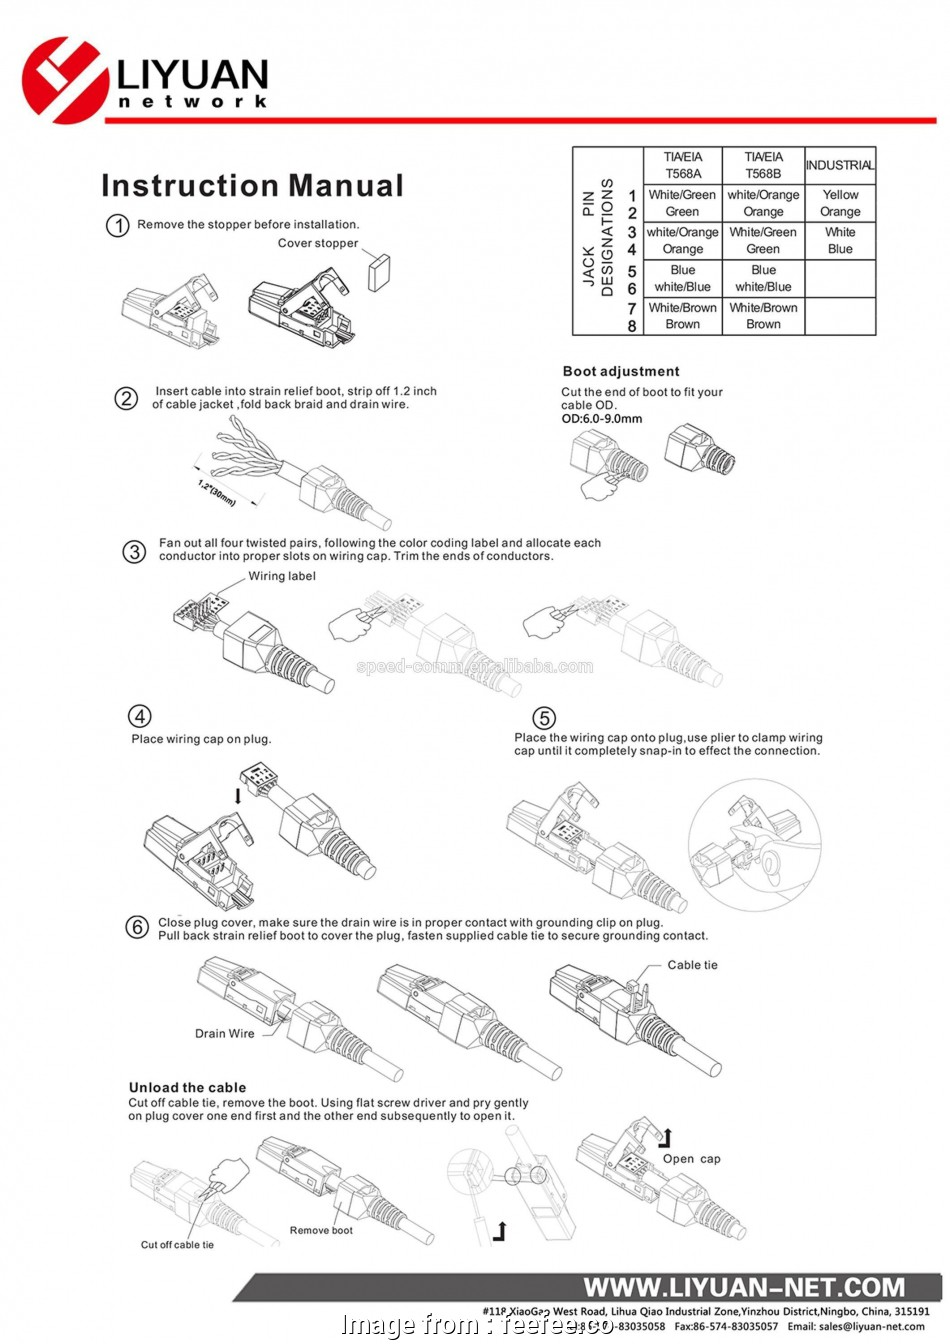 Gfci Wiring Multiple Outlets Diagram Best Wiring Diagram  Multiple Gfci Outlets Inspirationa  To